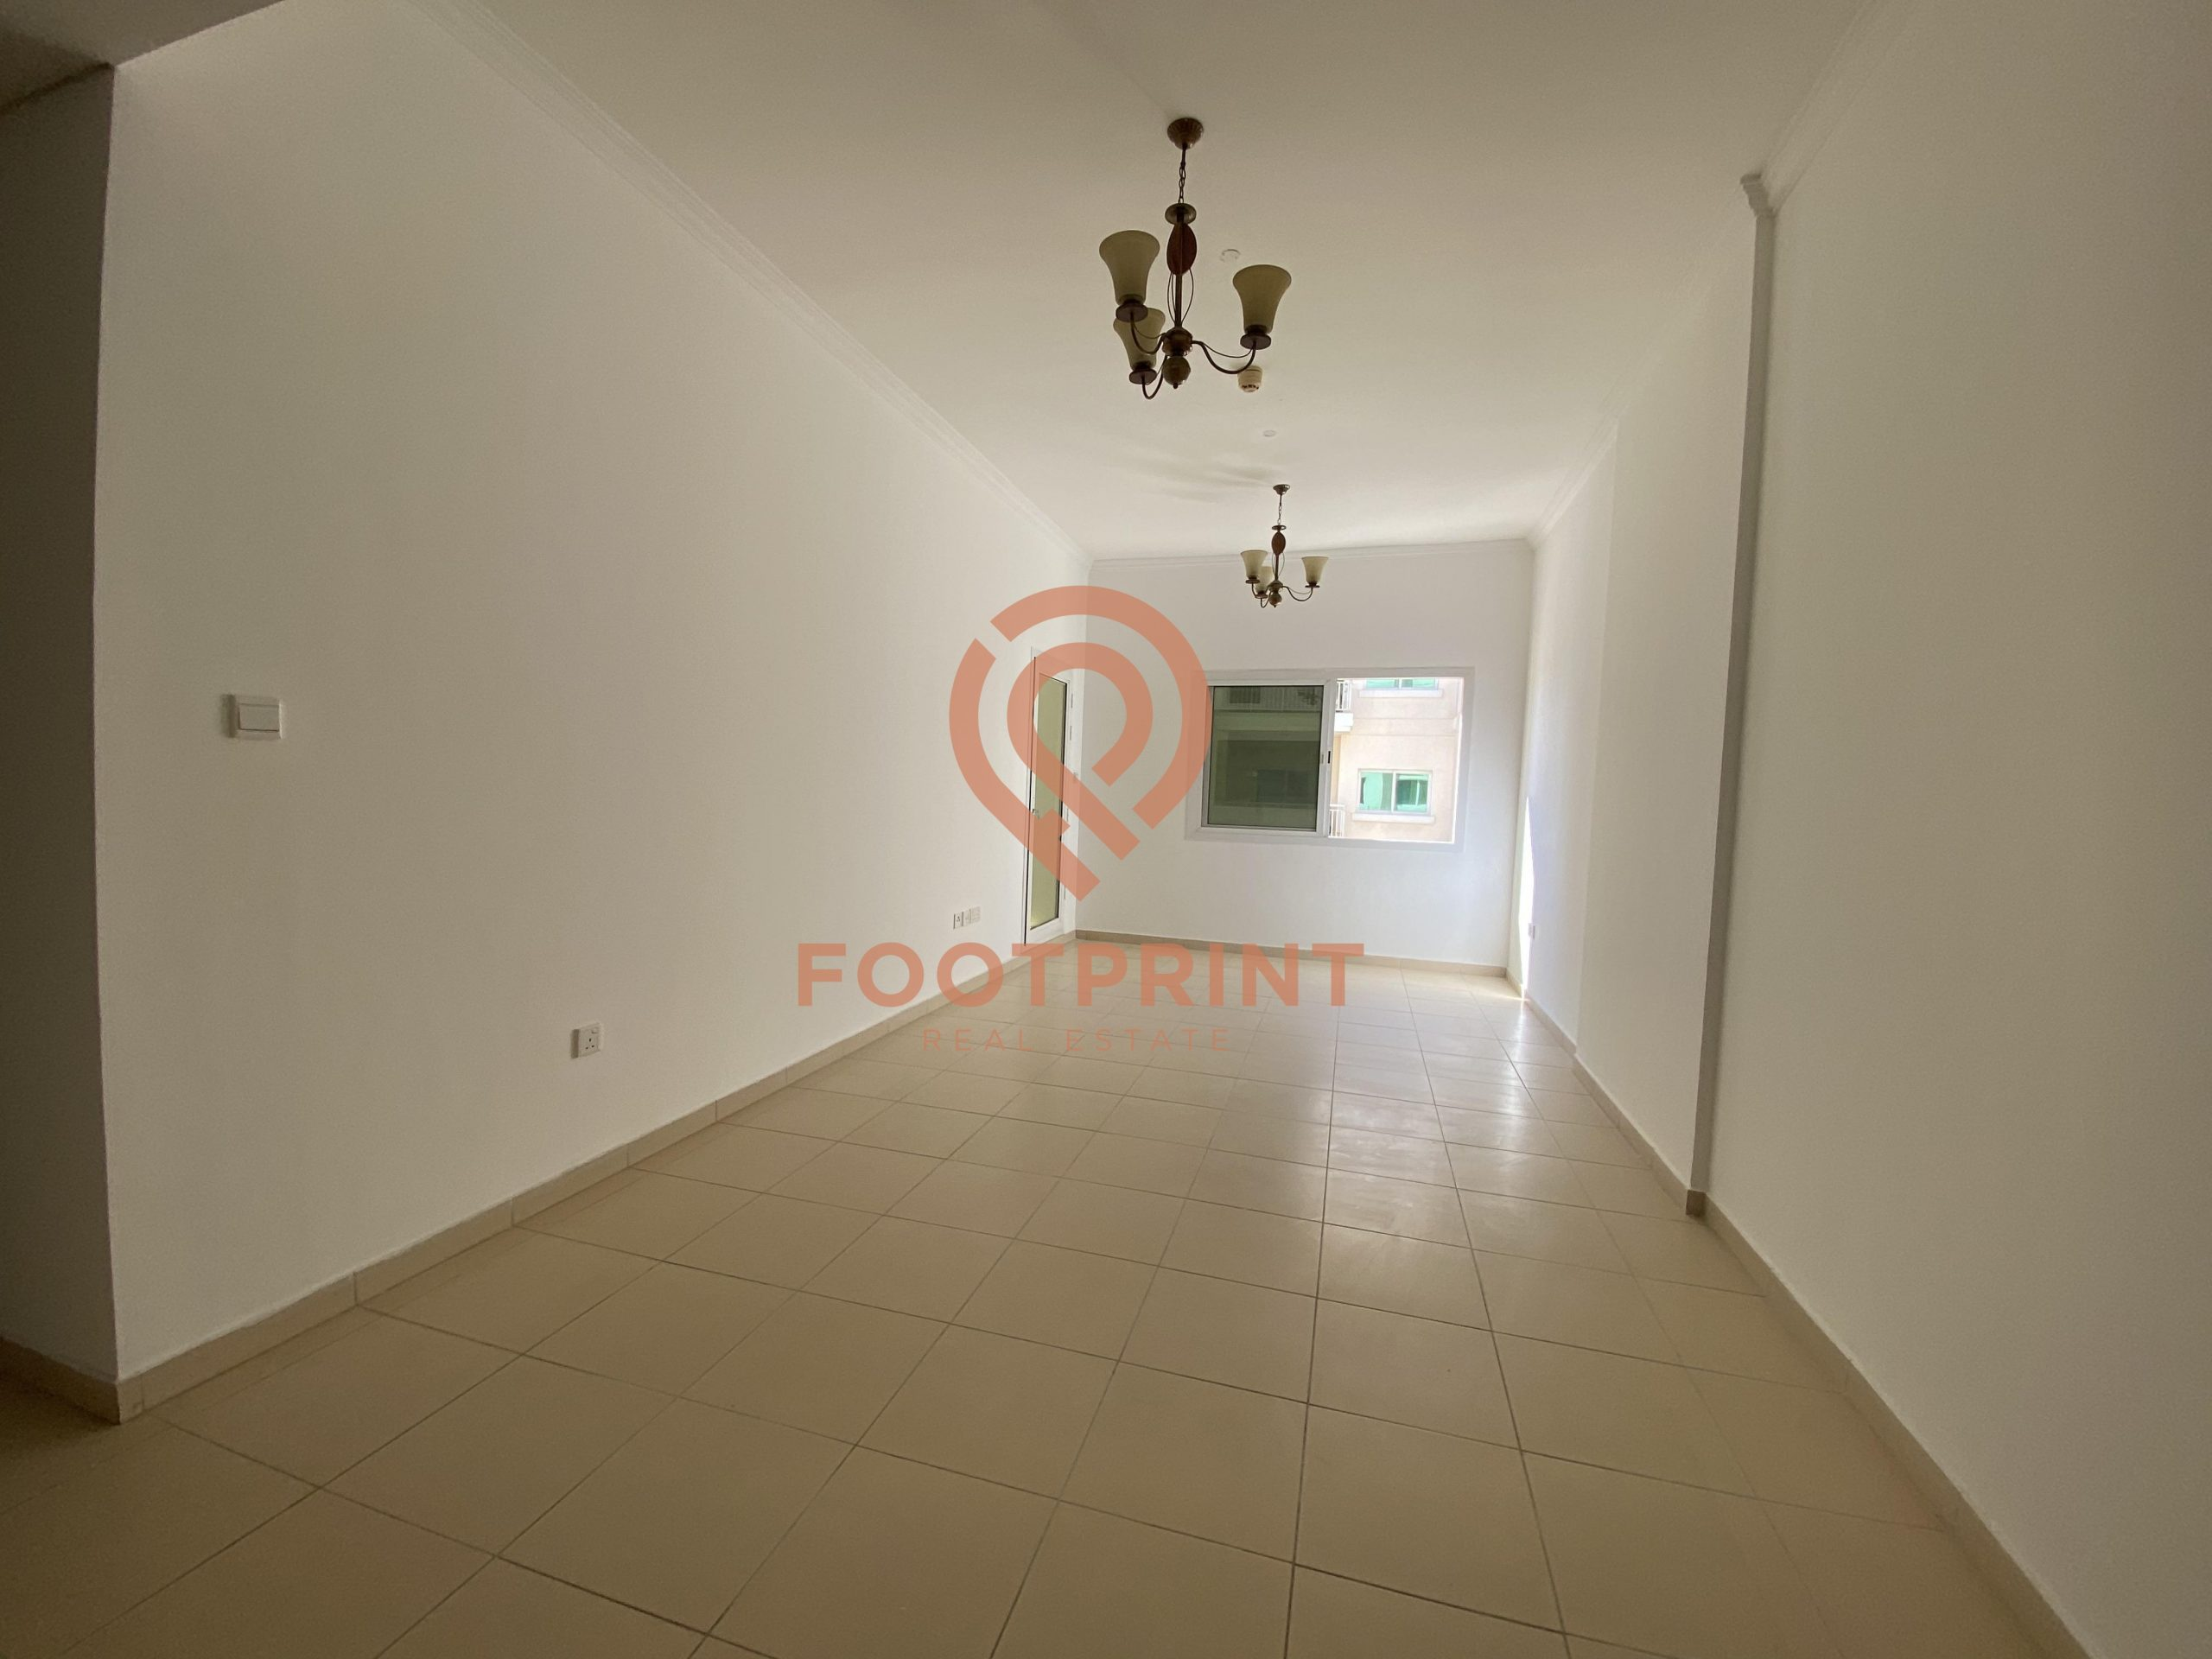 2BDRM WITH SPACIOUS LAYOUT -HIGHER FLOOR